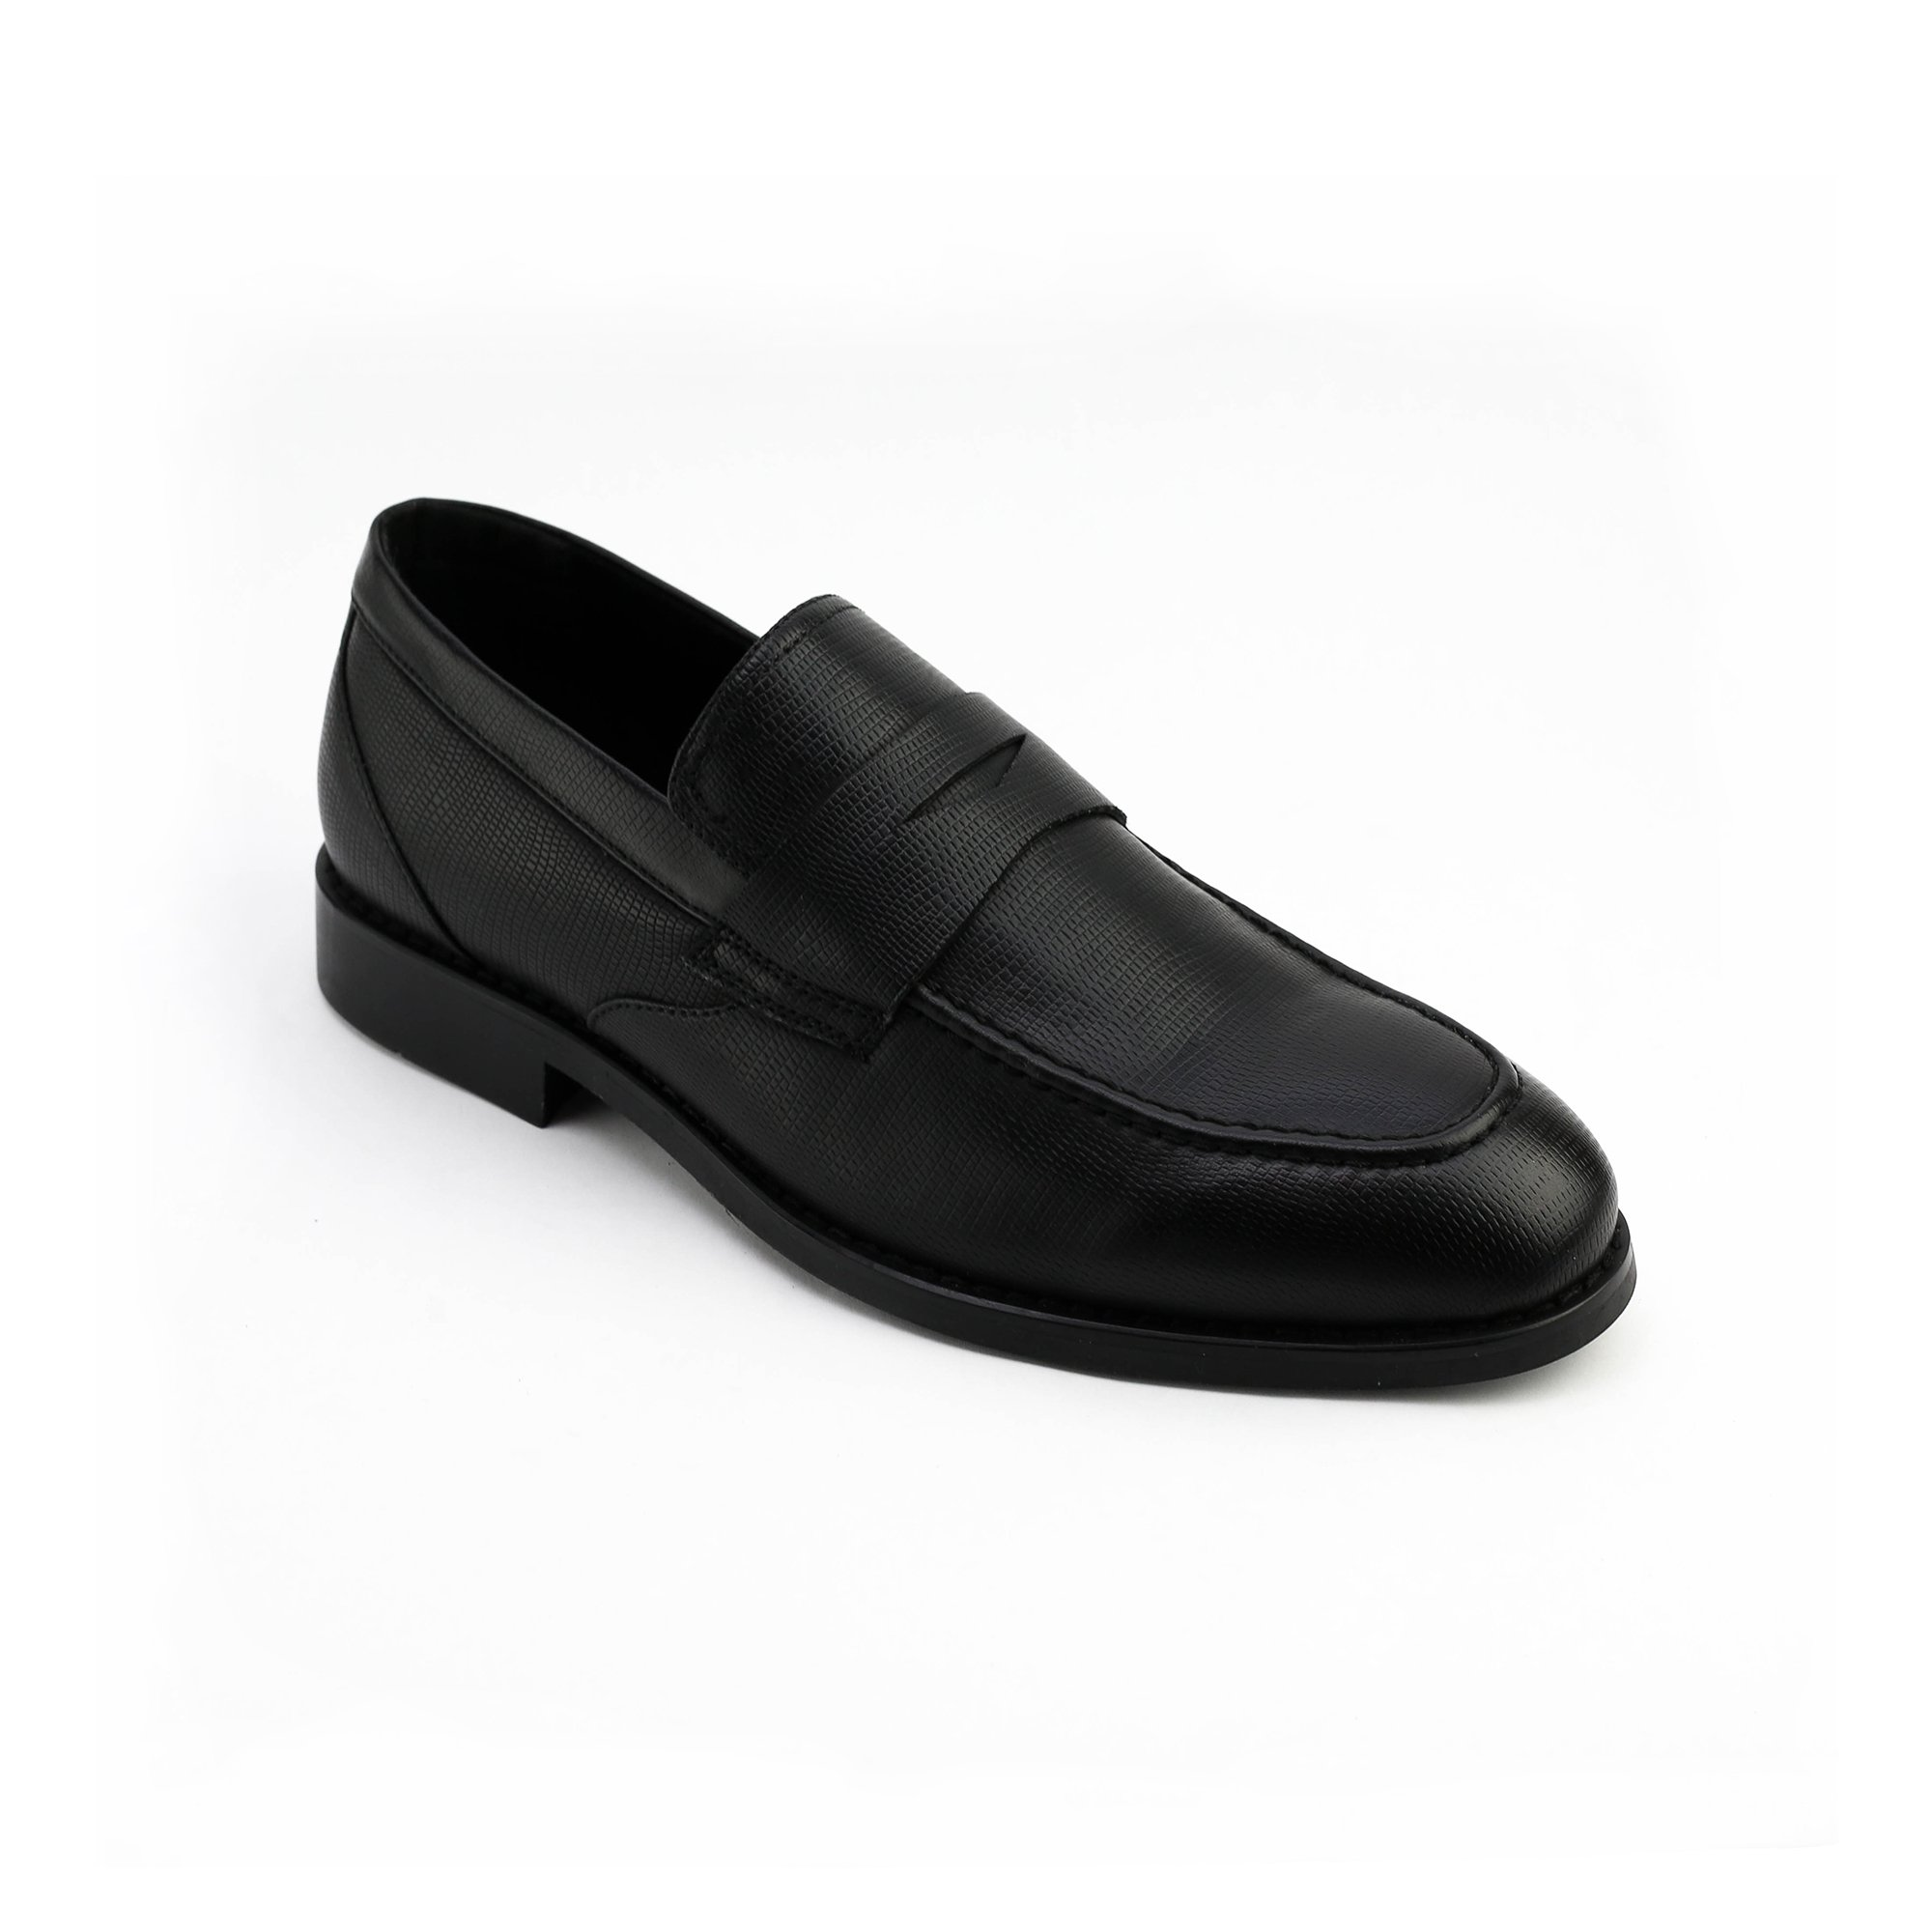 XRAY Mens Driving Car Garnet Penny Loafer Shoes-Black-12 by XRAY